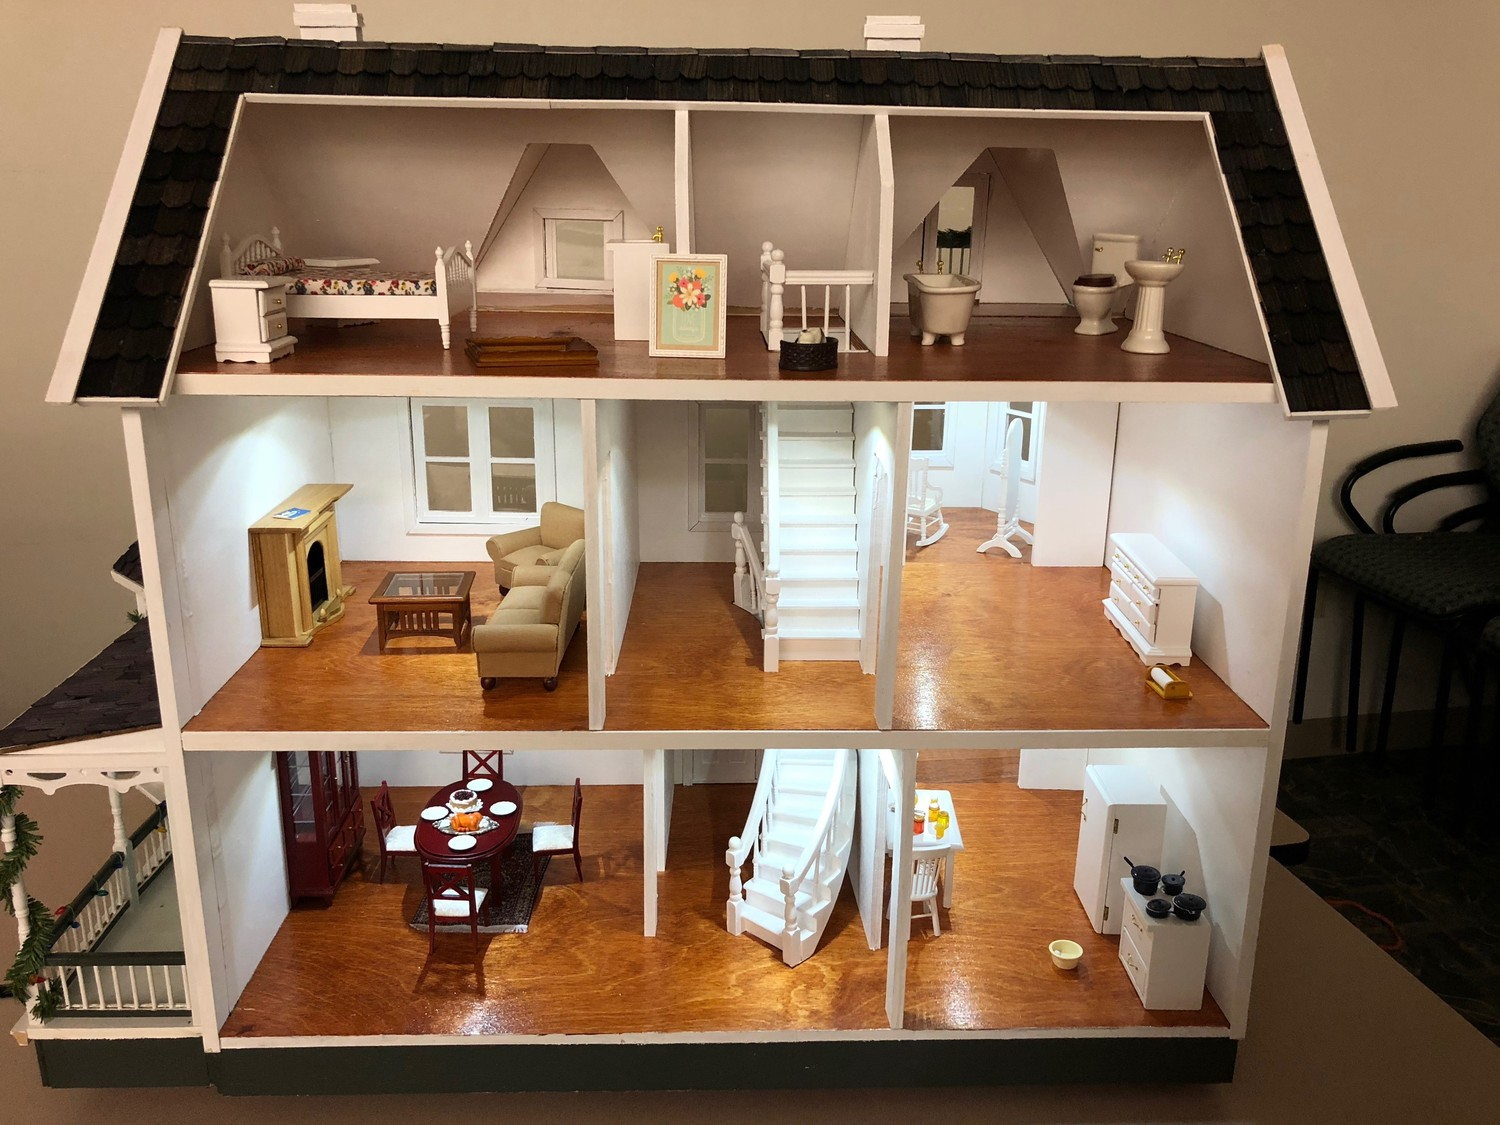 Some of the houses built by Hoffman and his helpers include special touches, like battery-powered lighting and furniture.